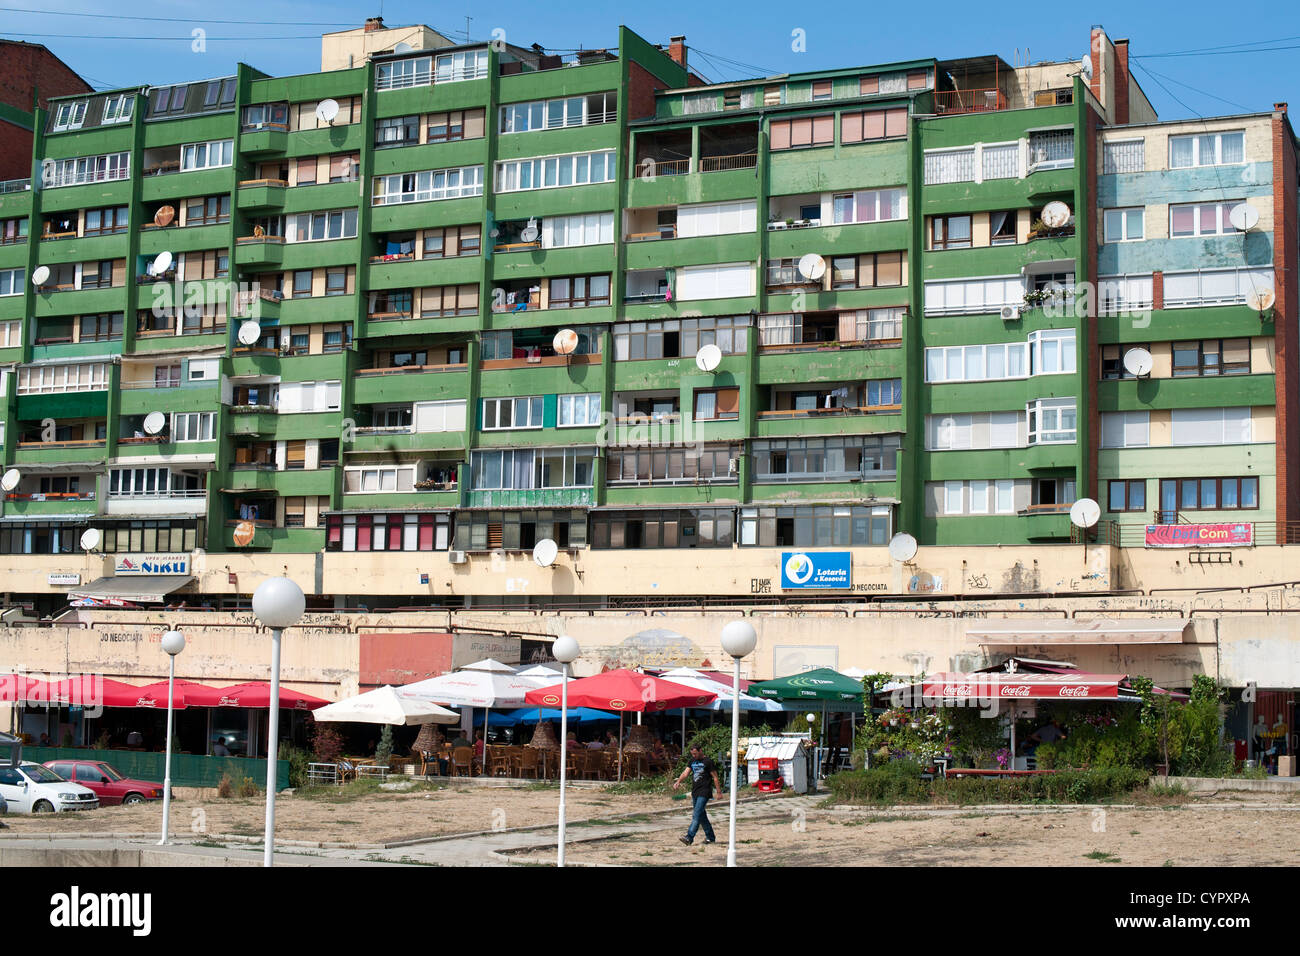 Apartment buildings in Pristina, the capital of the Republic of Kosovo. - Stock Image